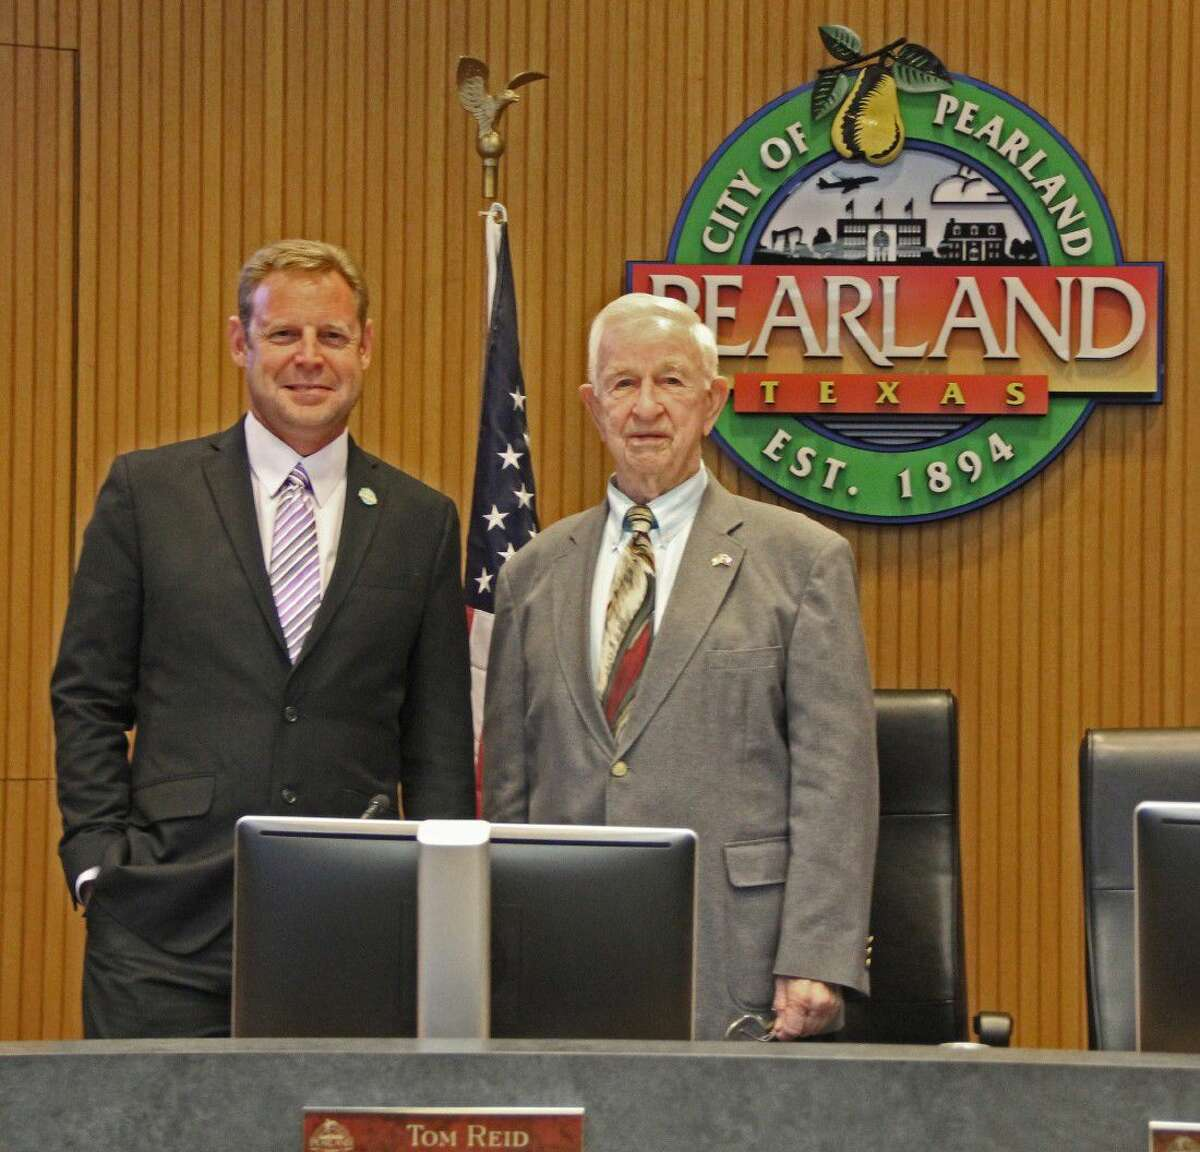 """Pearland Councilman Gary Moore, left, and Mayor Tom Reid were among the candidates endorsed for re-election in a letter distributed by a local real estate agent. The letter warned that """"liberal pro gay Democrats"""" sought to take over the City Council and school board."""